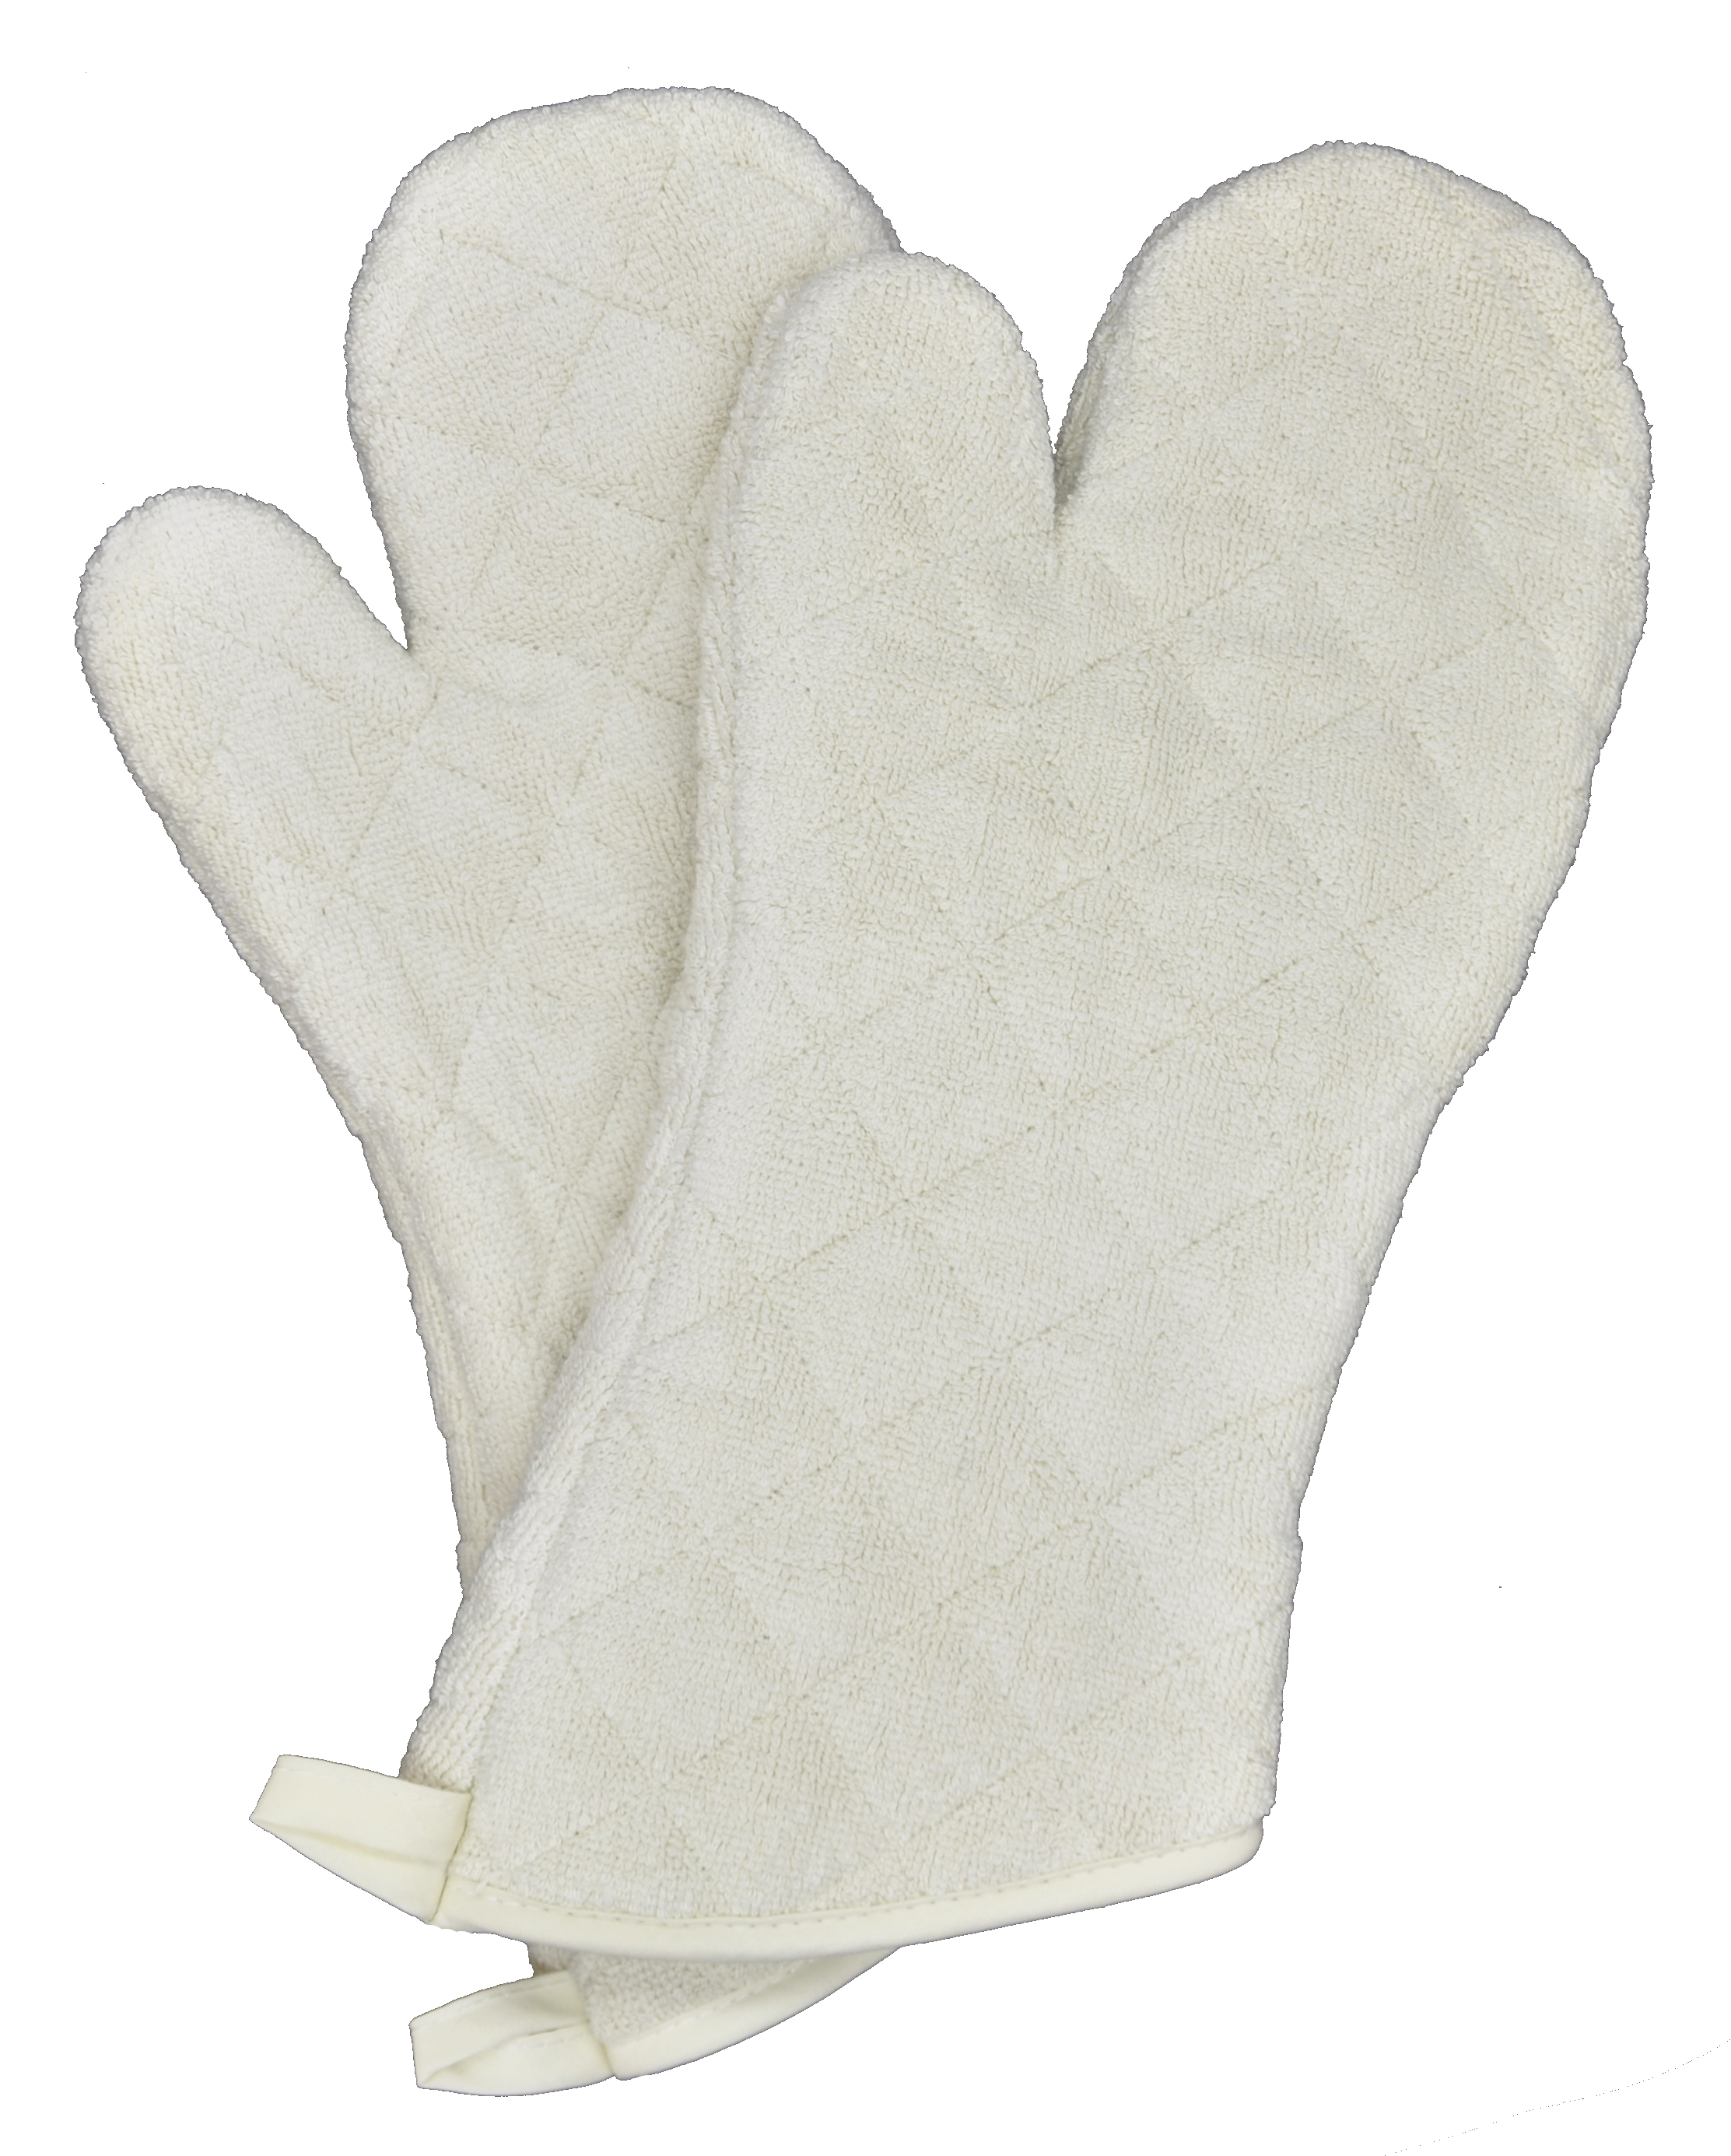 Eurow & O'Reilly Corp. Terry Oven Mitts Commercial Grade 2-Pack Color Cream at Sears.com